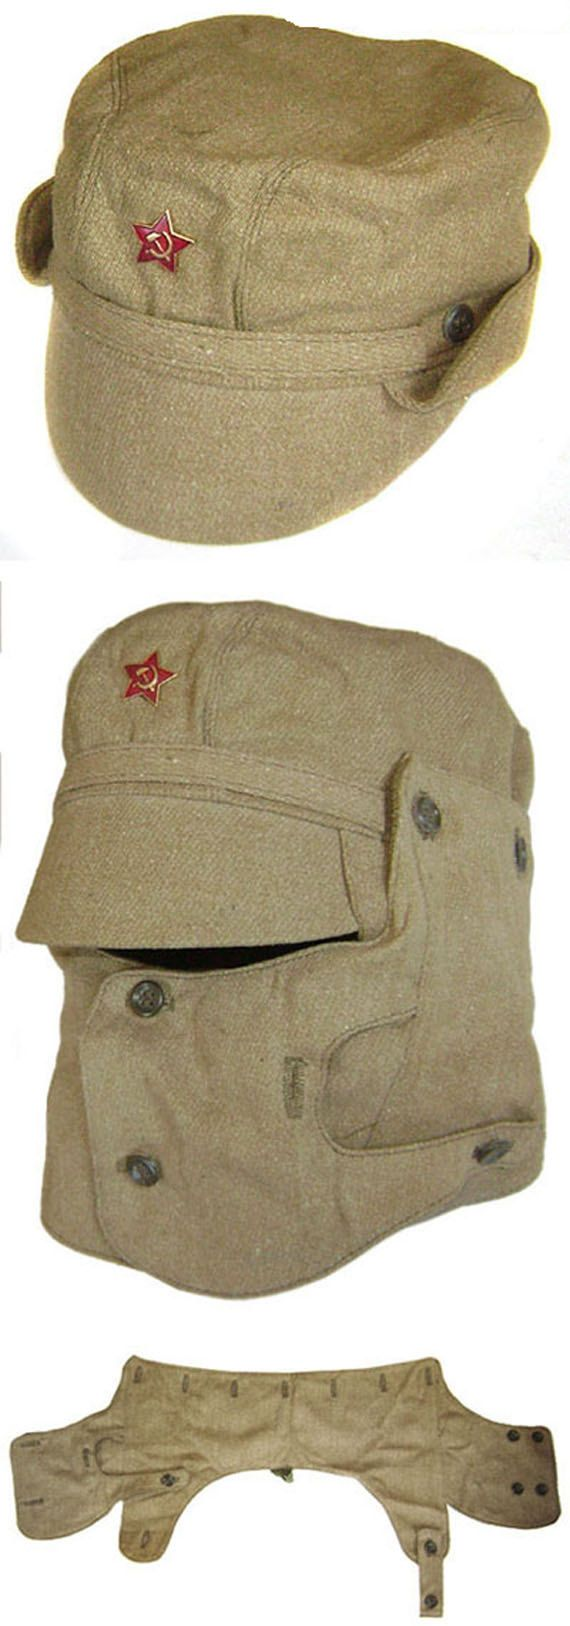 Soviet Military Afghanistan war cap with by Sovietmilitaryitems